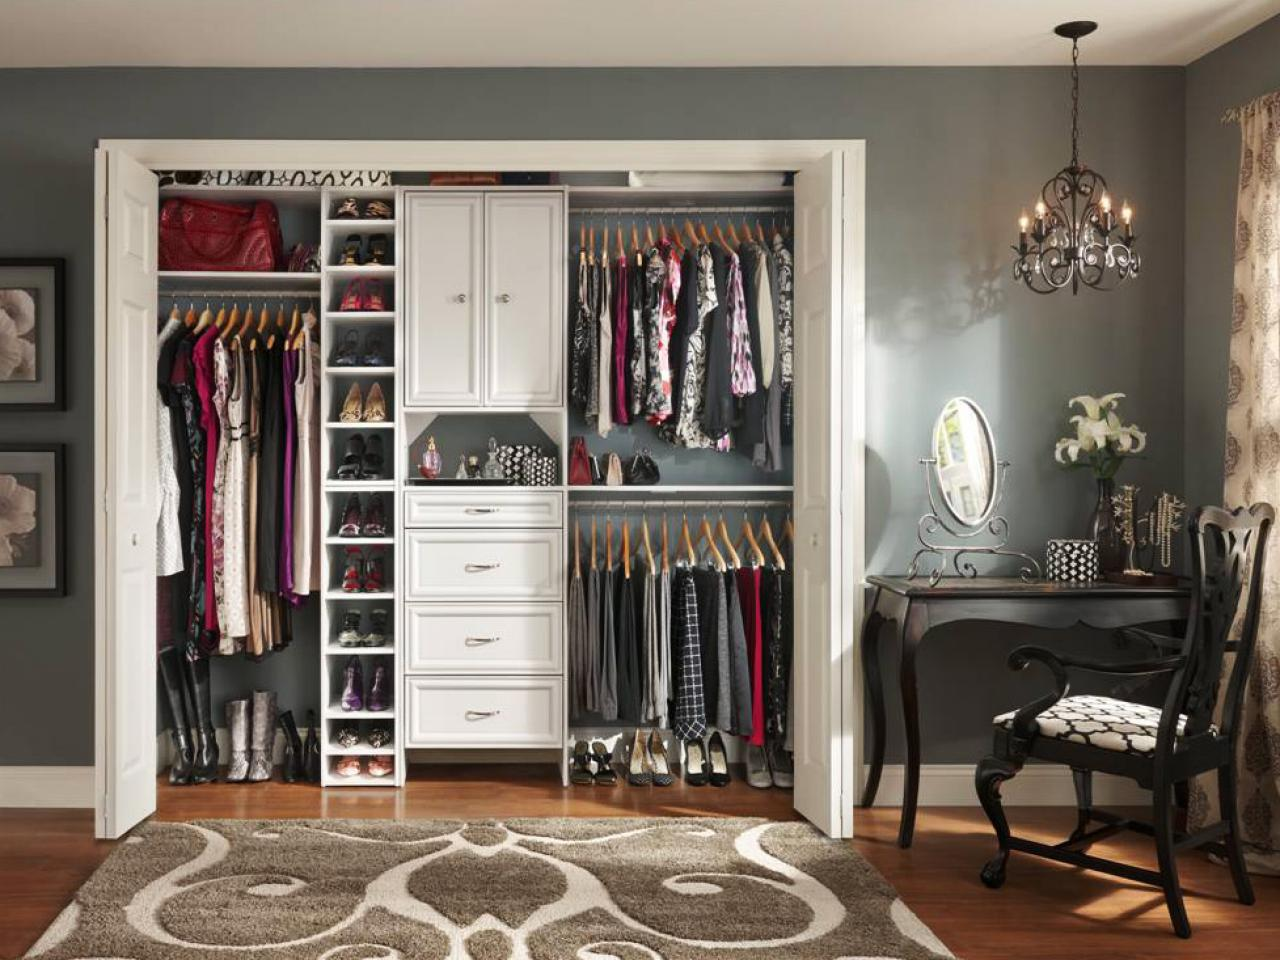 Inspiring Interior Storage Design Ideas with Diy Walk in Closet: How To Make Your Own Closet Organizer | Diy Walk In Closet | Modular Closet Systems